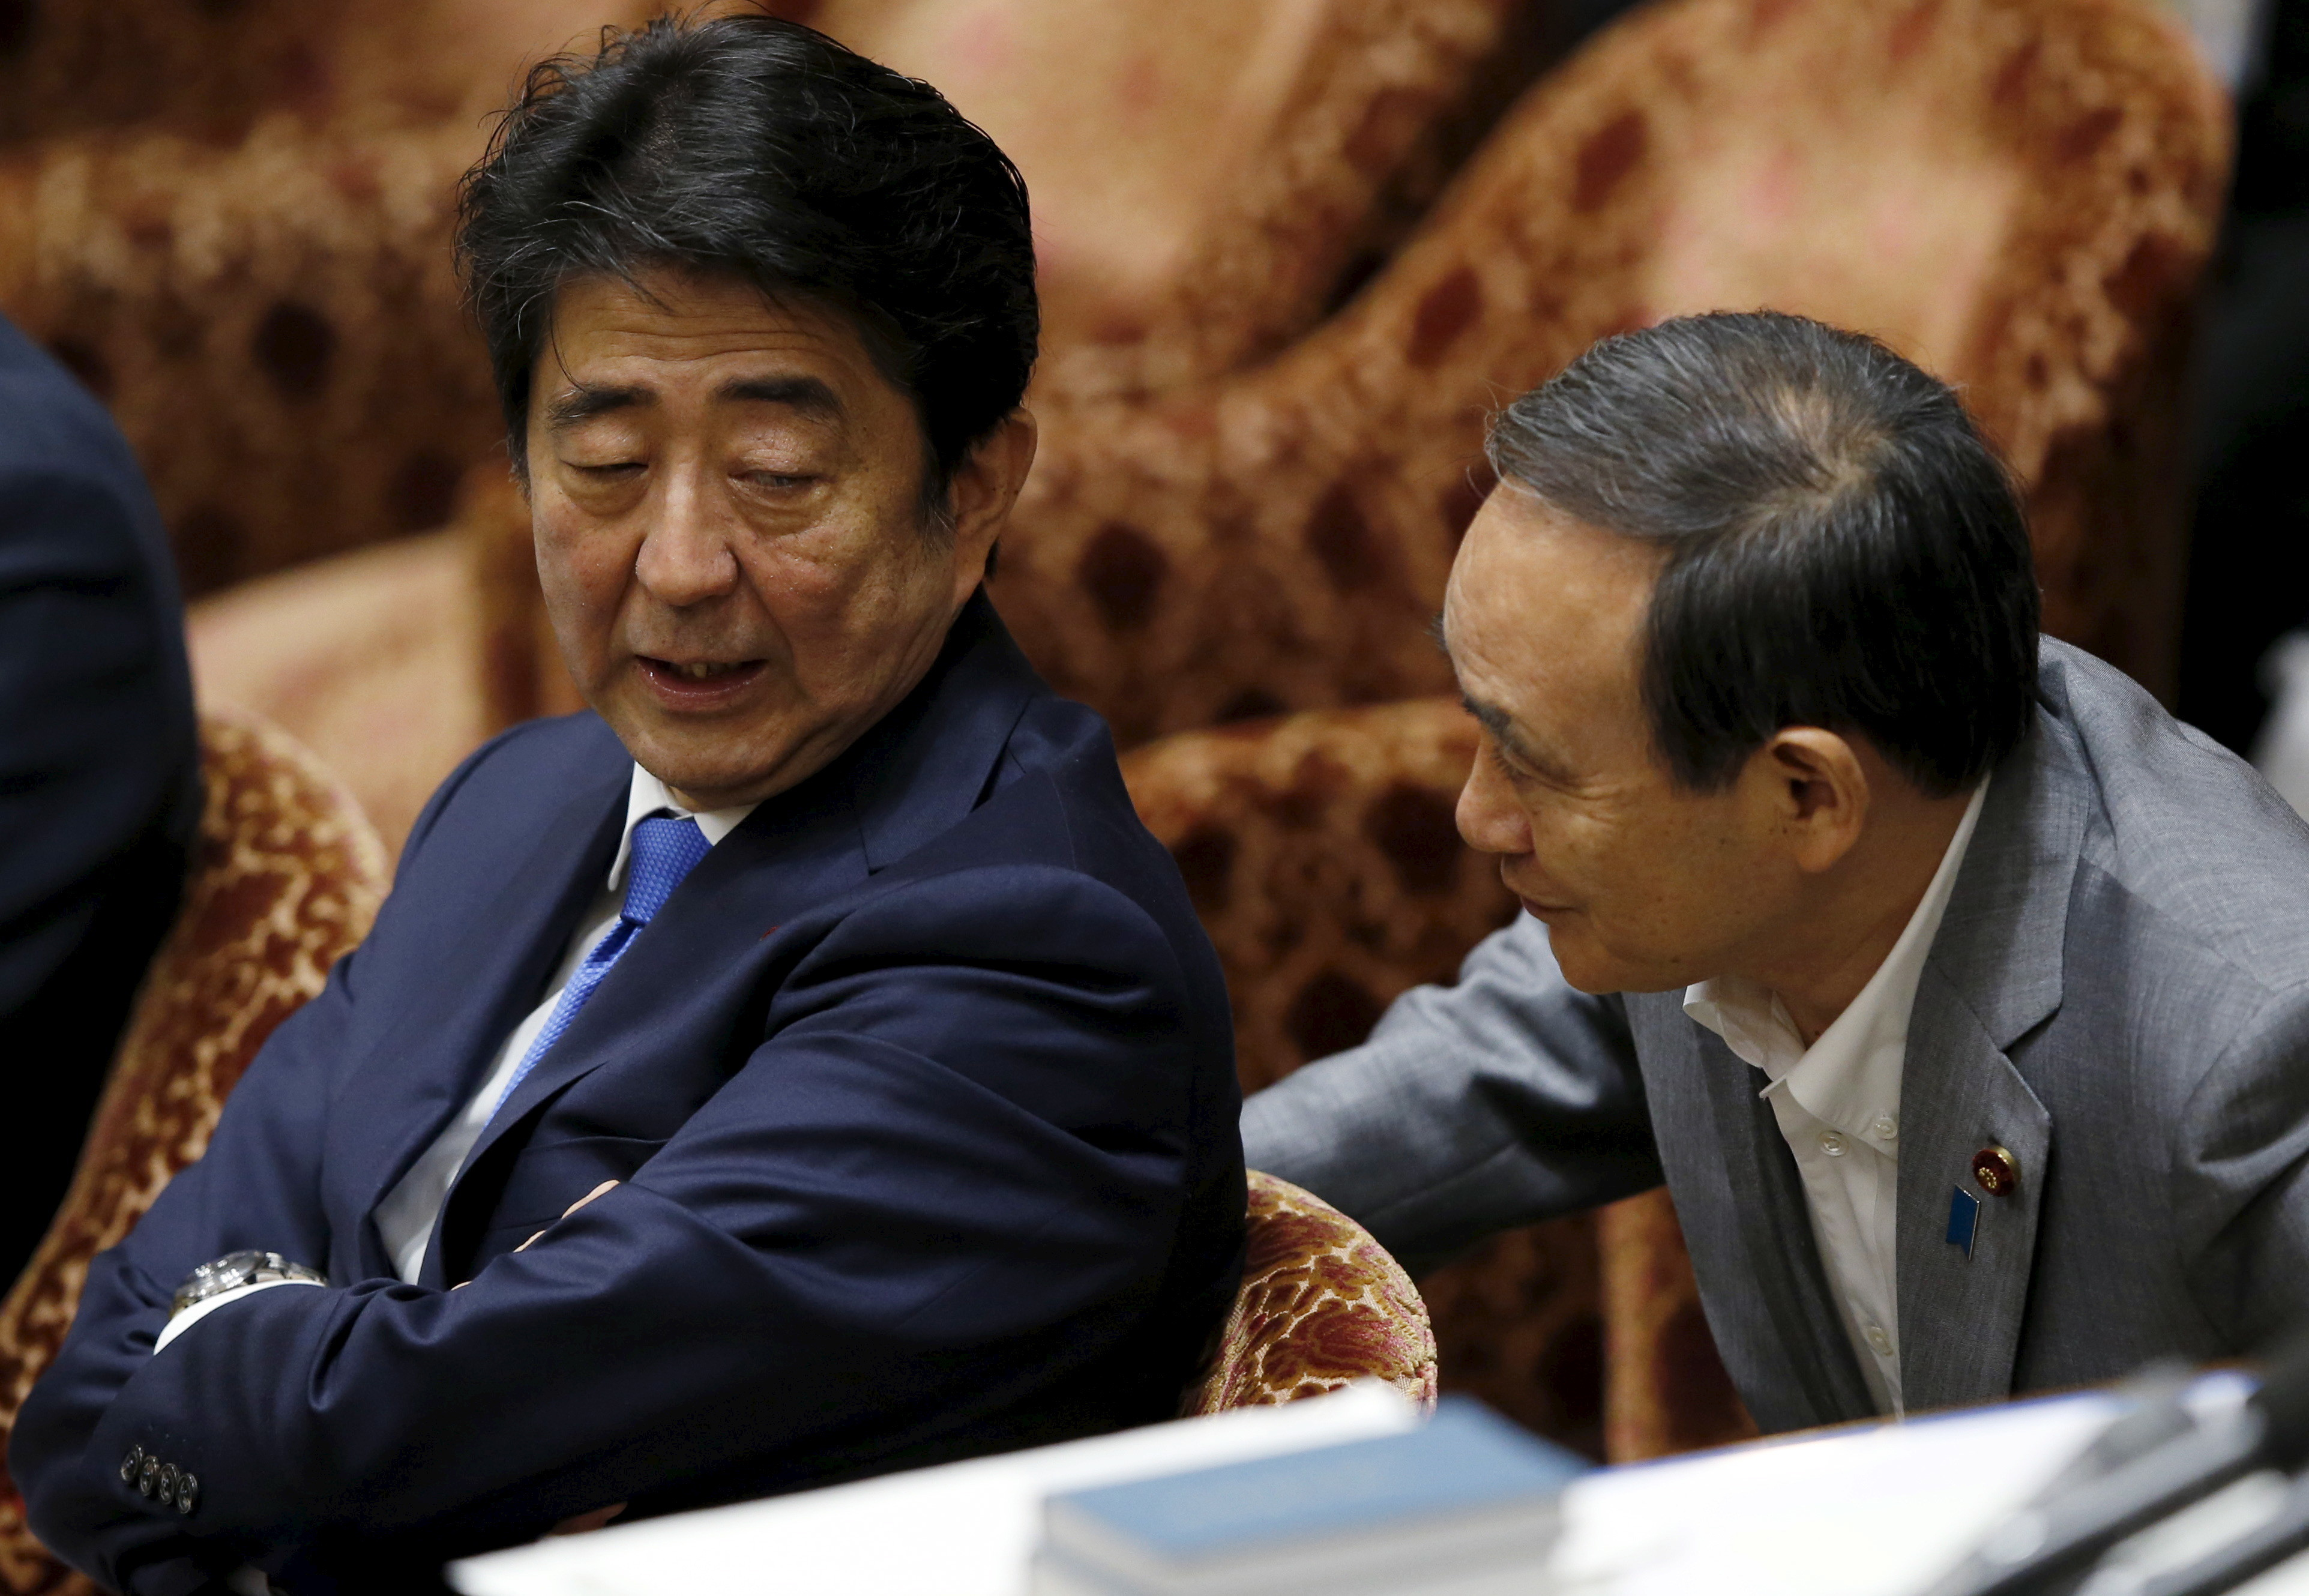 Japan's Prime Minister Shinzo Abe (L) talks with Chief Cabinet Secretary Yoshihide Suga at a lower house special committee session on security-related legislation at the parliament in Tokyo July 15, 2015. Abe faces his toughest challenge since taking office in 2012 as his ruling bloc prepares to force unpopular security bills through the lower house despite voter doubts about the legislation and a slew of other policies. REUTERS/Toru Hanai - GF10000159484